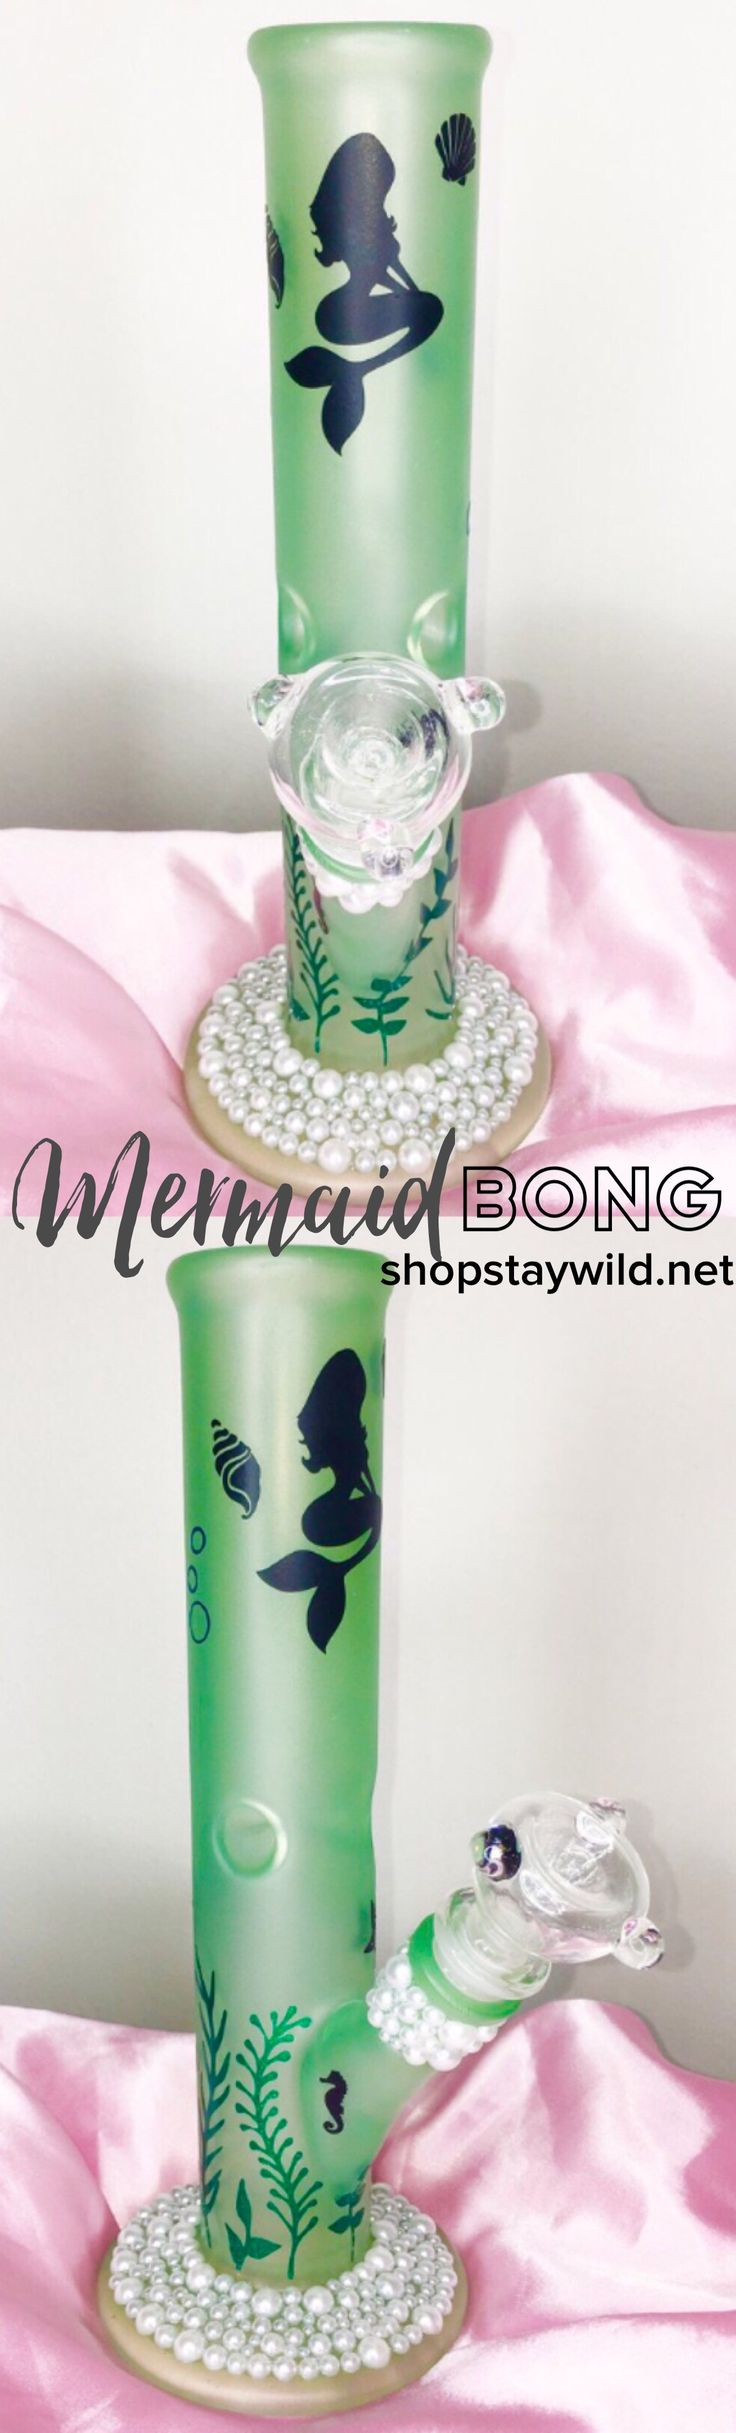 The mermaid bong is the color of sea glass and bedazzled with pearls. ✨ Girly, feminine bongs and pipes for women at www.shopstaywild.net  women love weed too! Beautiful cannabis accessories like grinders, stash jars, rolling papers, bubblers and hemp body-care made just for girly girls that enjoy marijuana.